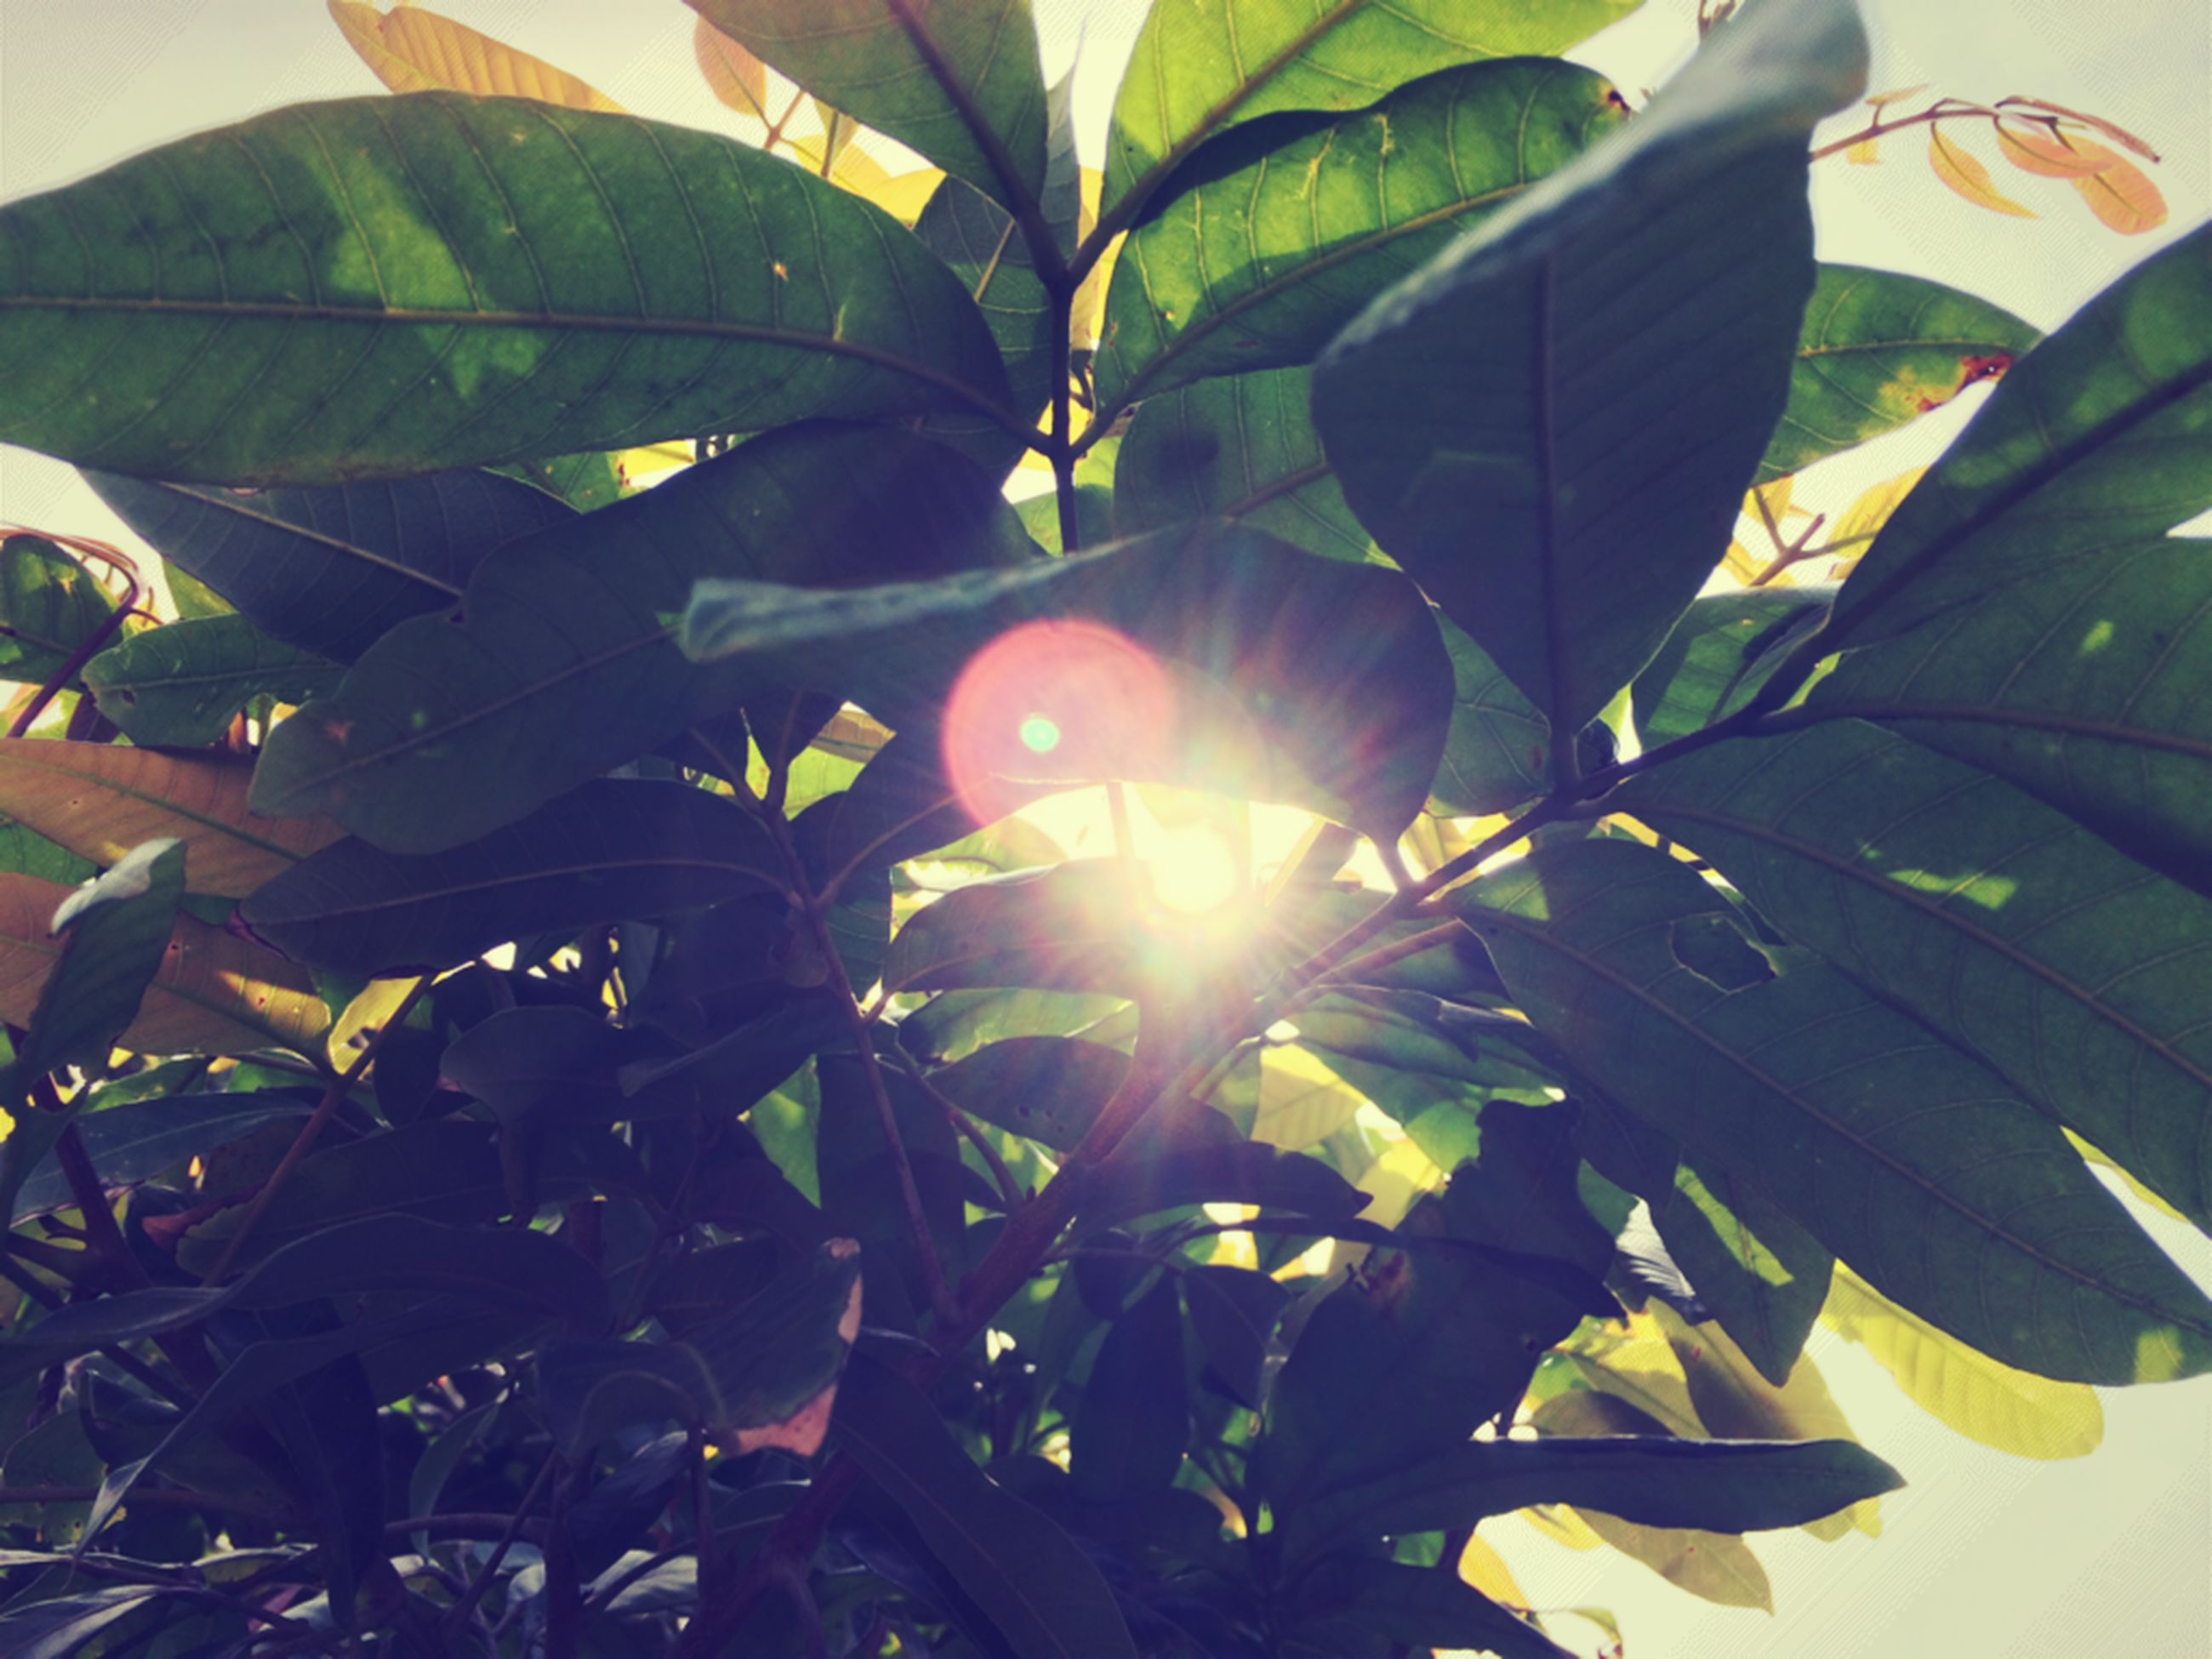 leaf, sun, sunlight, growth, sunbeam, low angle view, lens flare, nature, tree, beauty in nature, plant, green color, close-up, tranquility, day, sunny, outdoors, sky, branch, no people